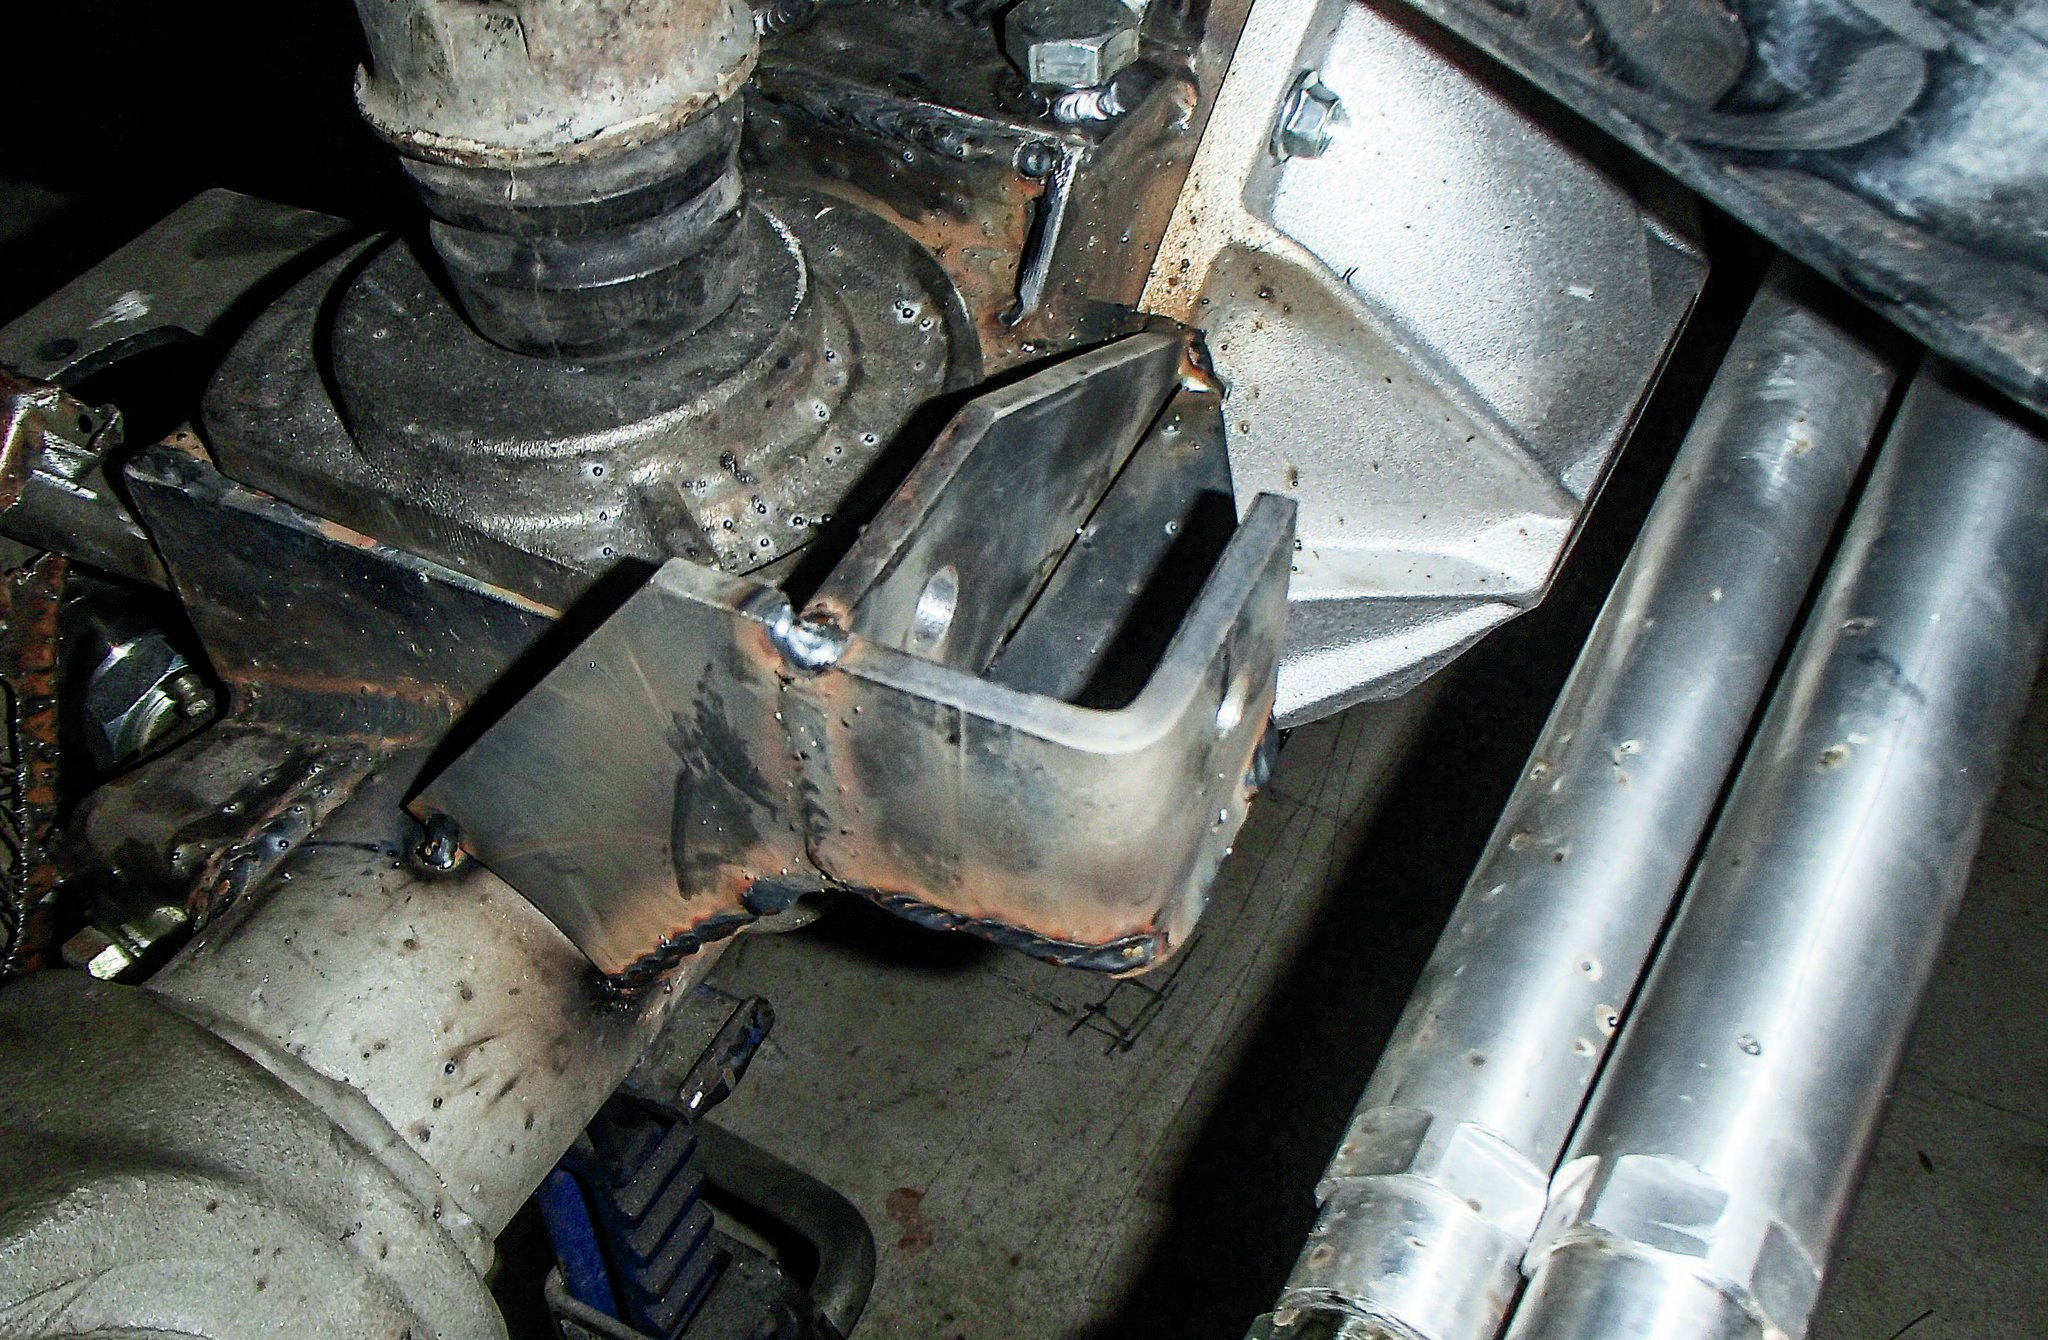 Once we got the drag link, tie rod, and pitman arm all mounted up on the Jeep, we could figure out how long our track bar needs to be and build mounts for it. For the axle end of the track bar mount, we built this bracket like those found on a stock TJ. We used 1⁄4-inch plate and our Swag Off Road bender to make the bracket. It's tack-welded in place until we are sure it's where we want.